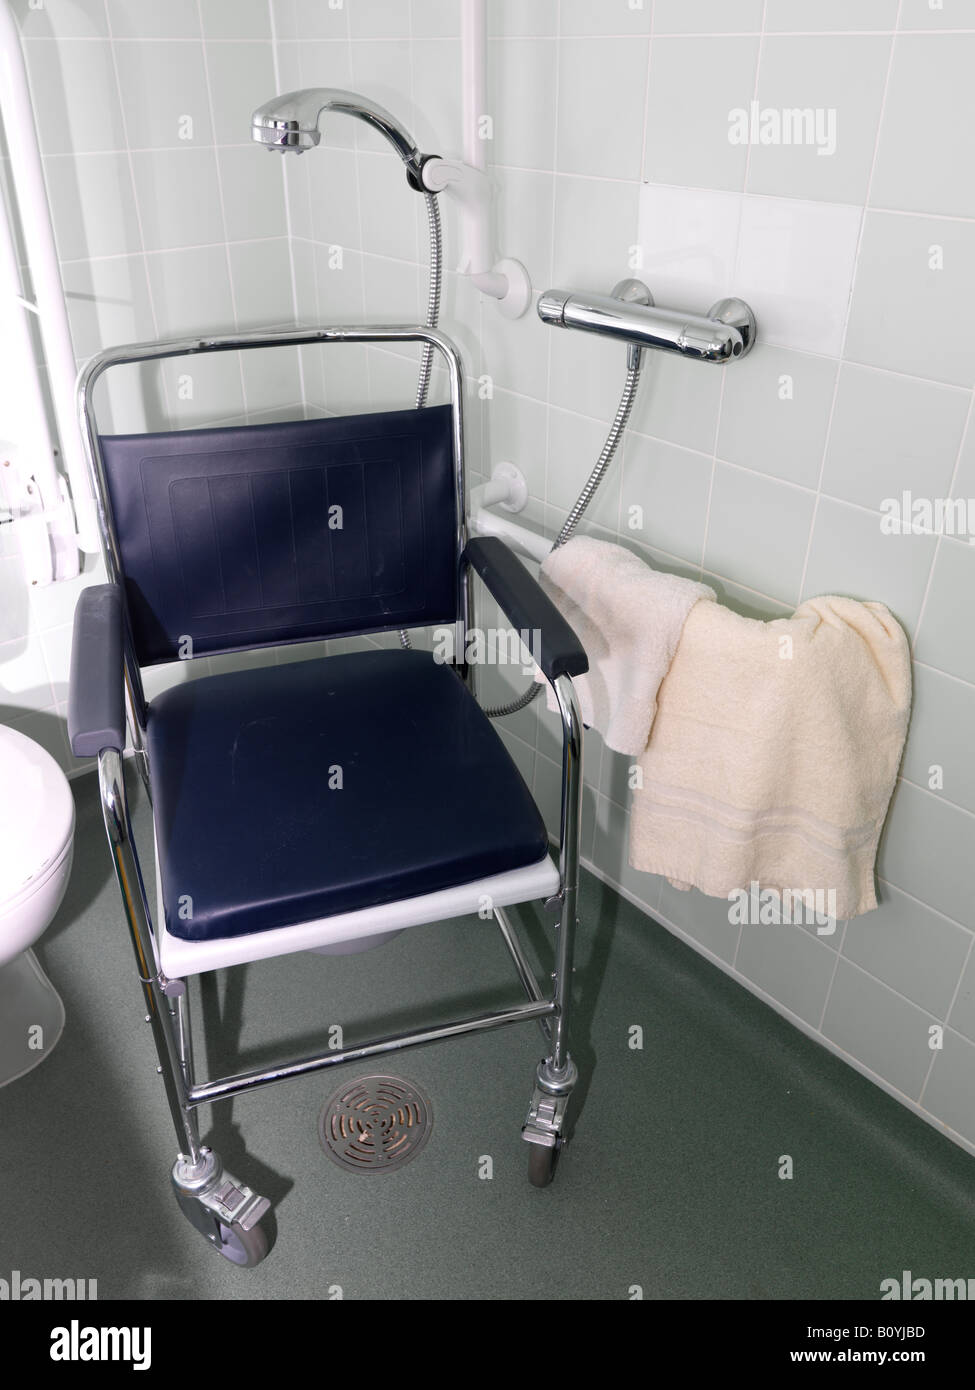 Shower Chair for Disabled Person Stock Photo, Royalty Free Image ...